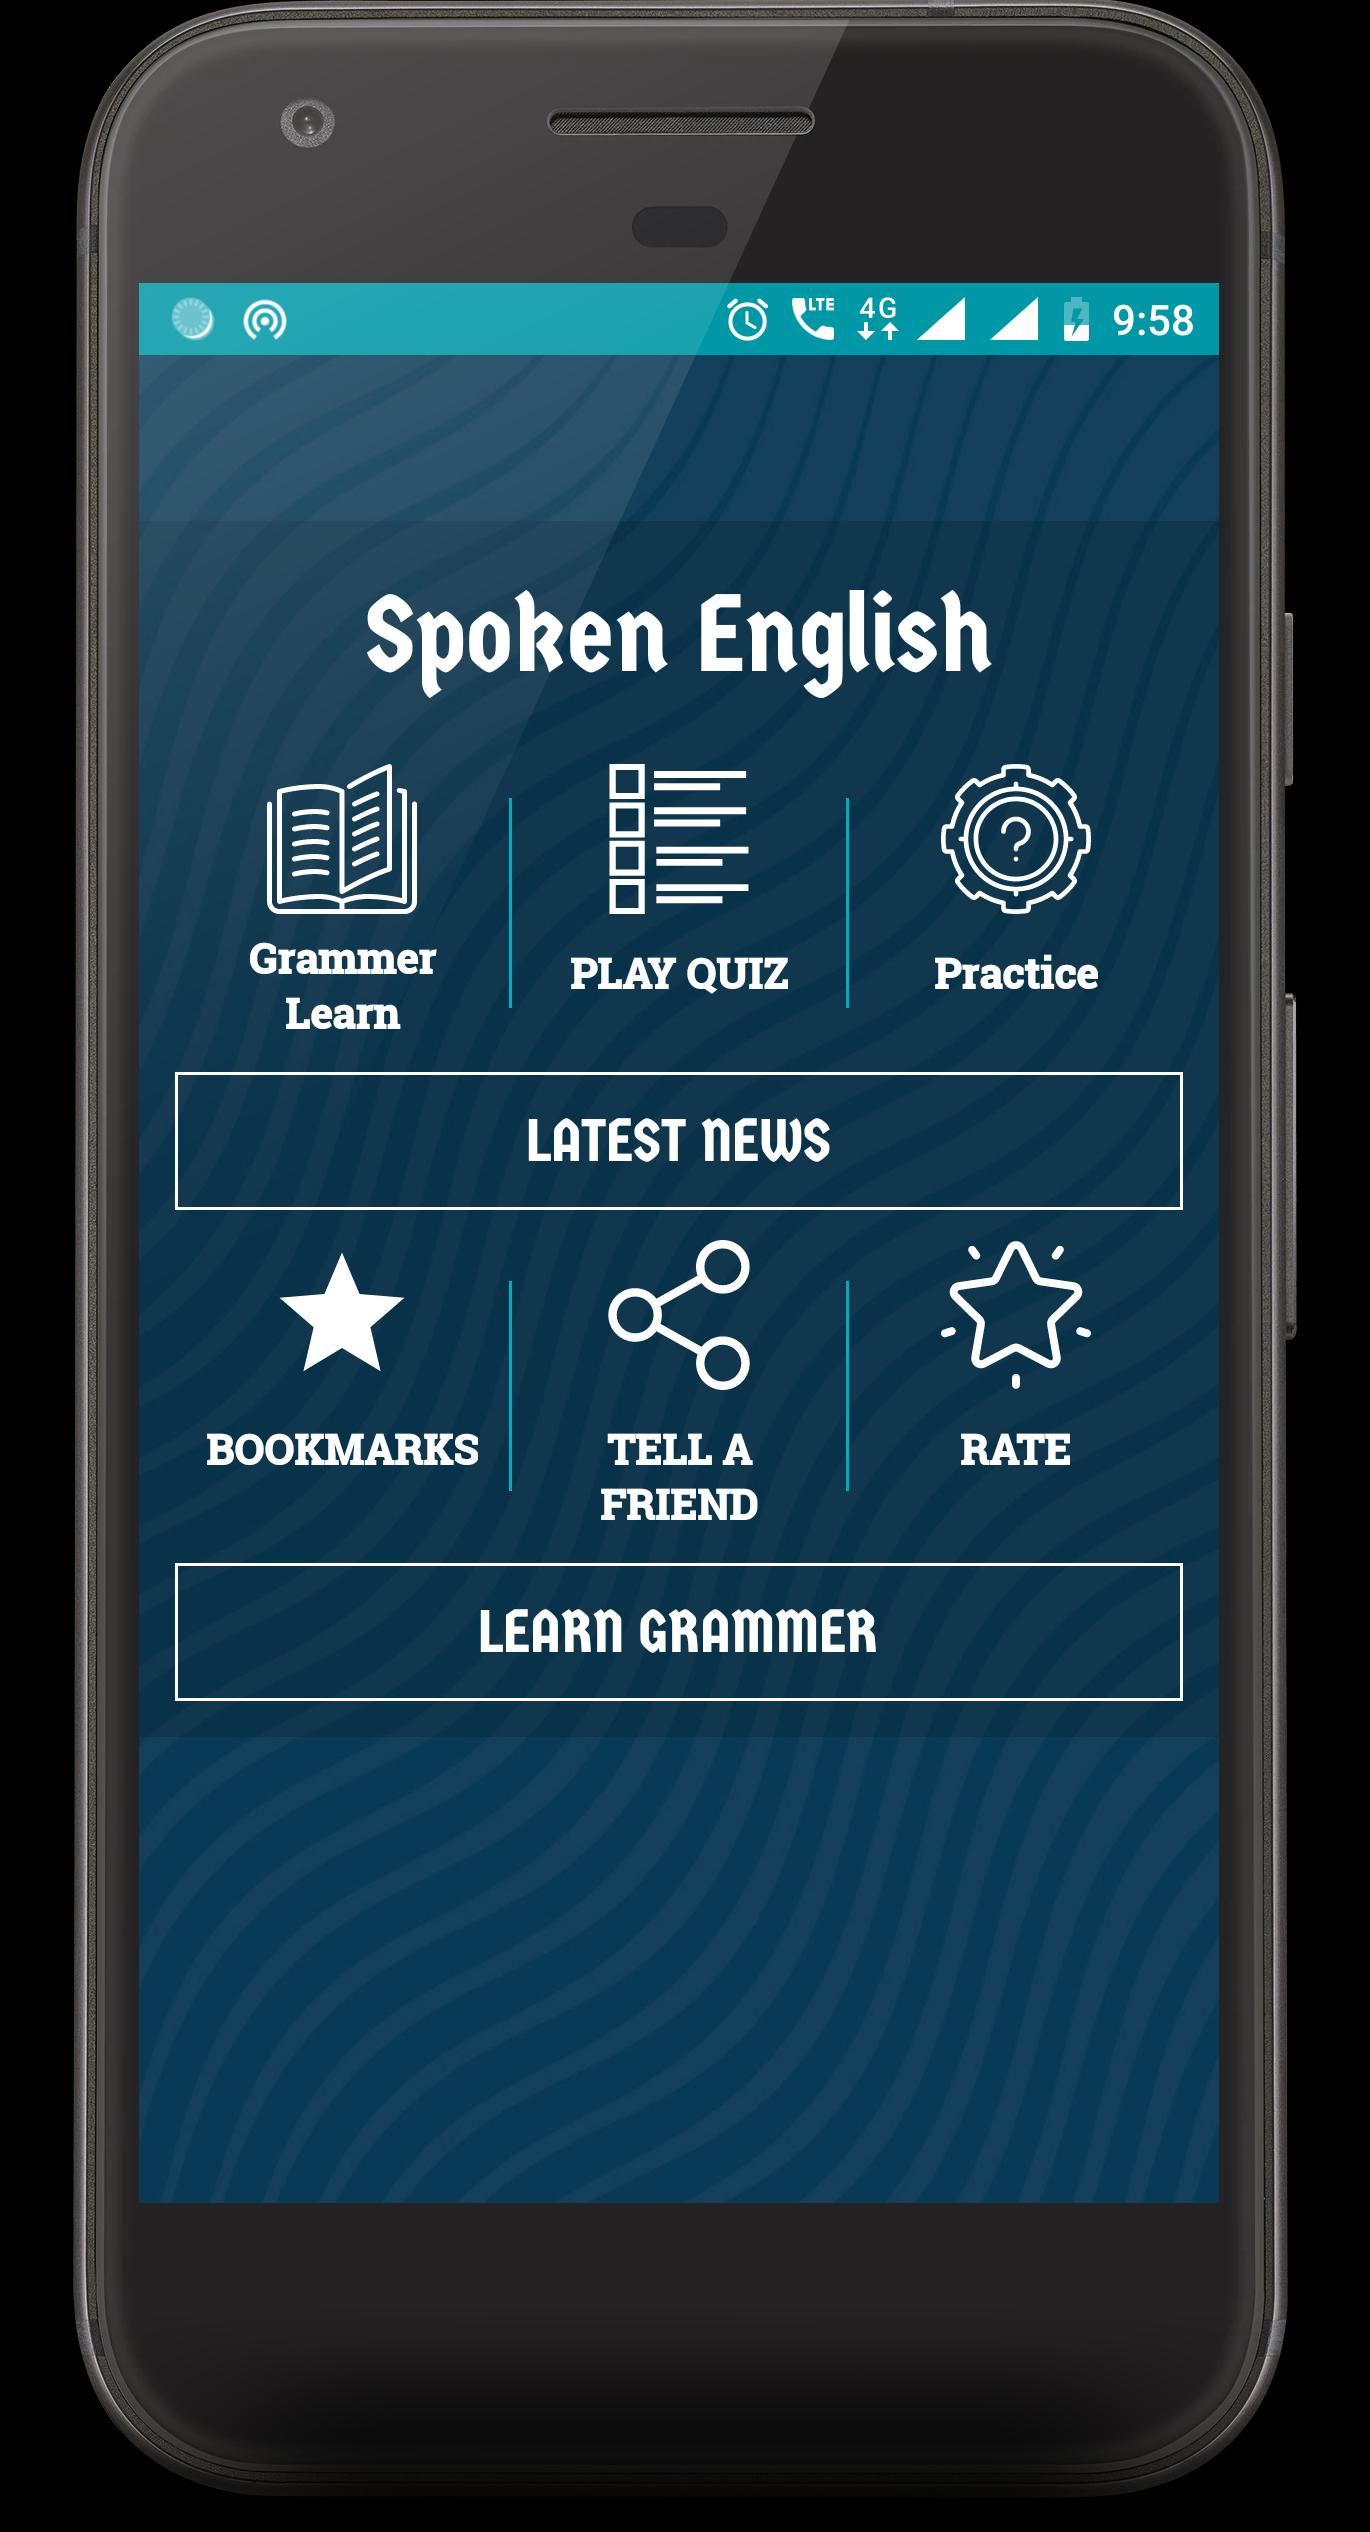 Speaking Book- English Speaking Course in Hindi for Android - APK